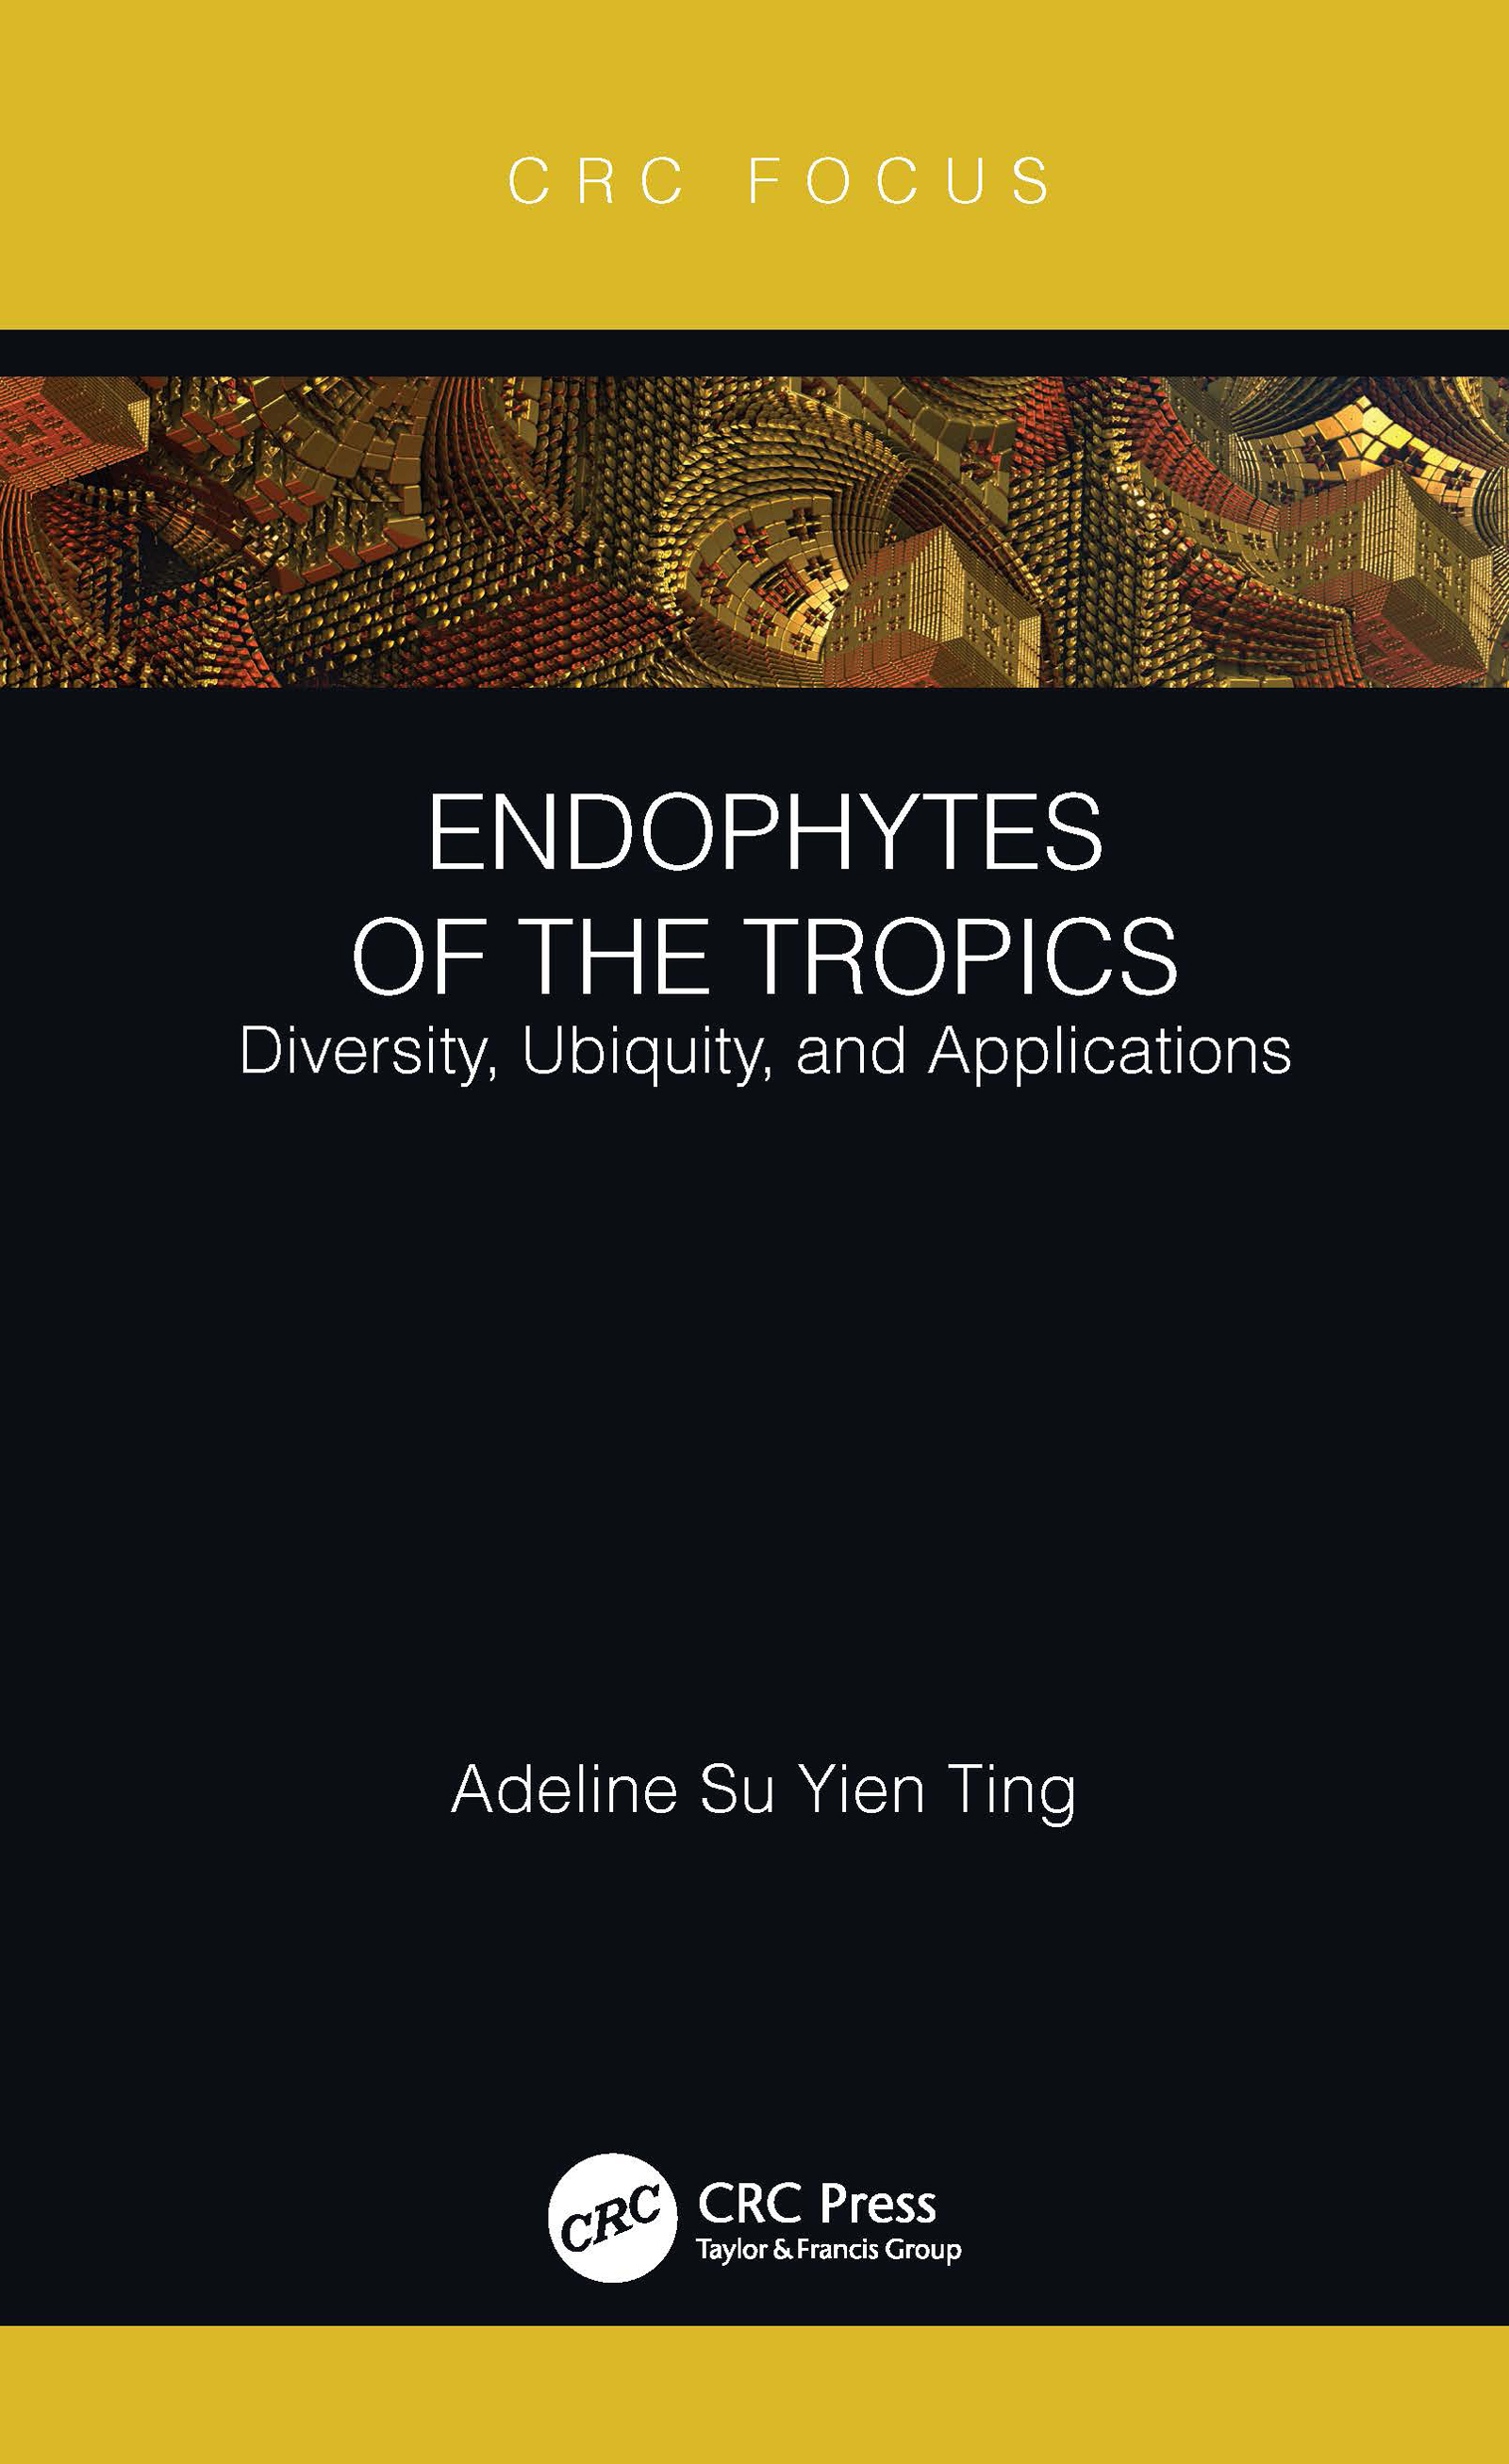 Commercialization of Endophytes from the Tropics